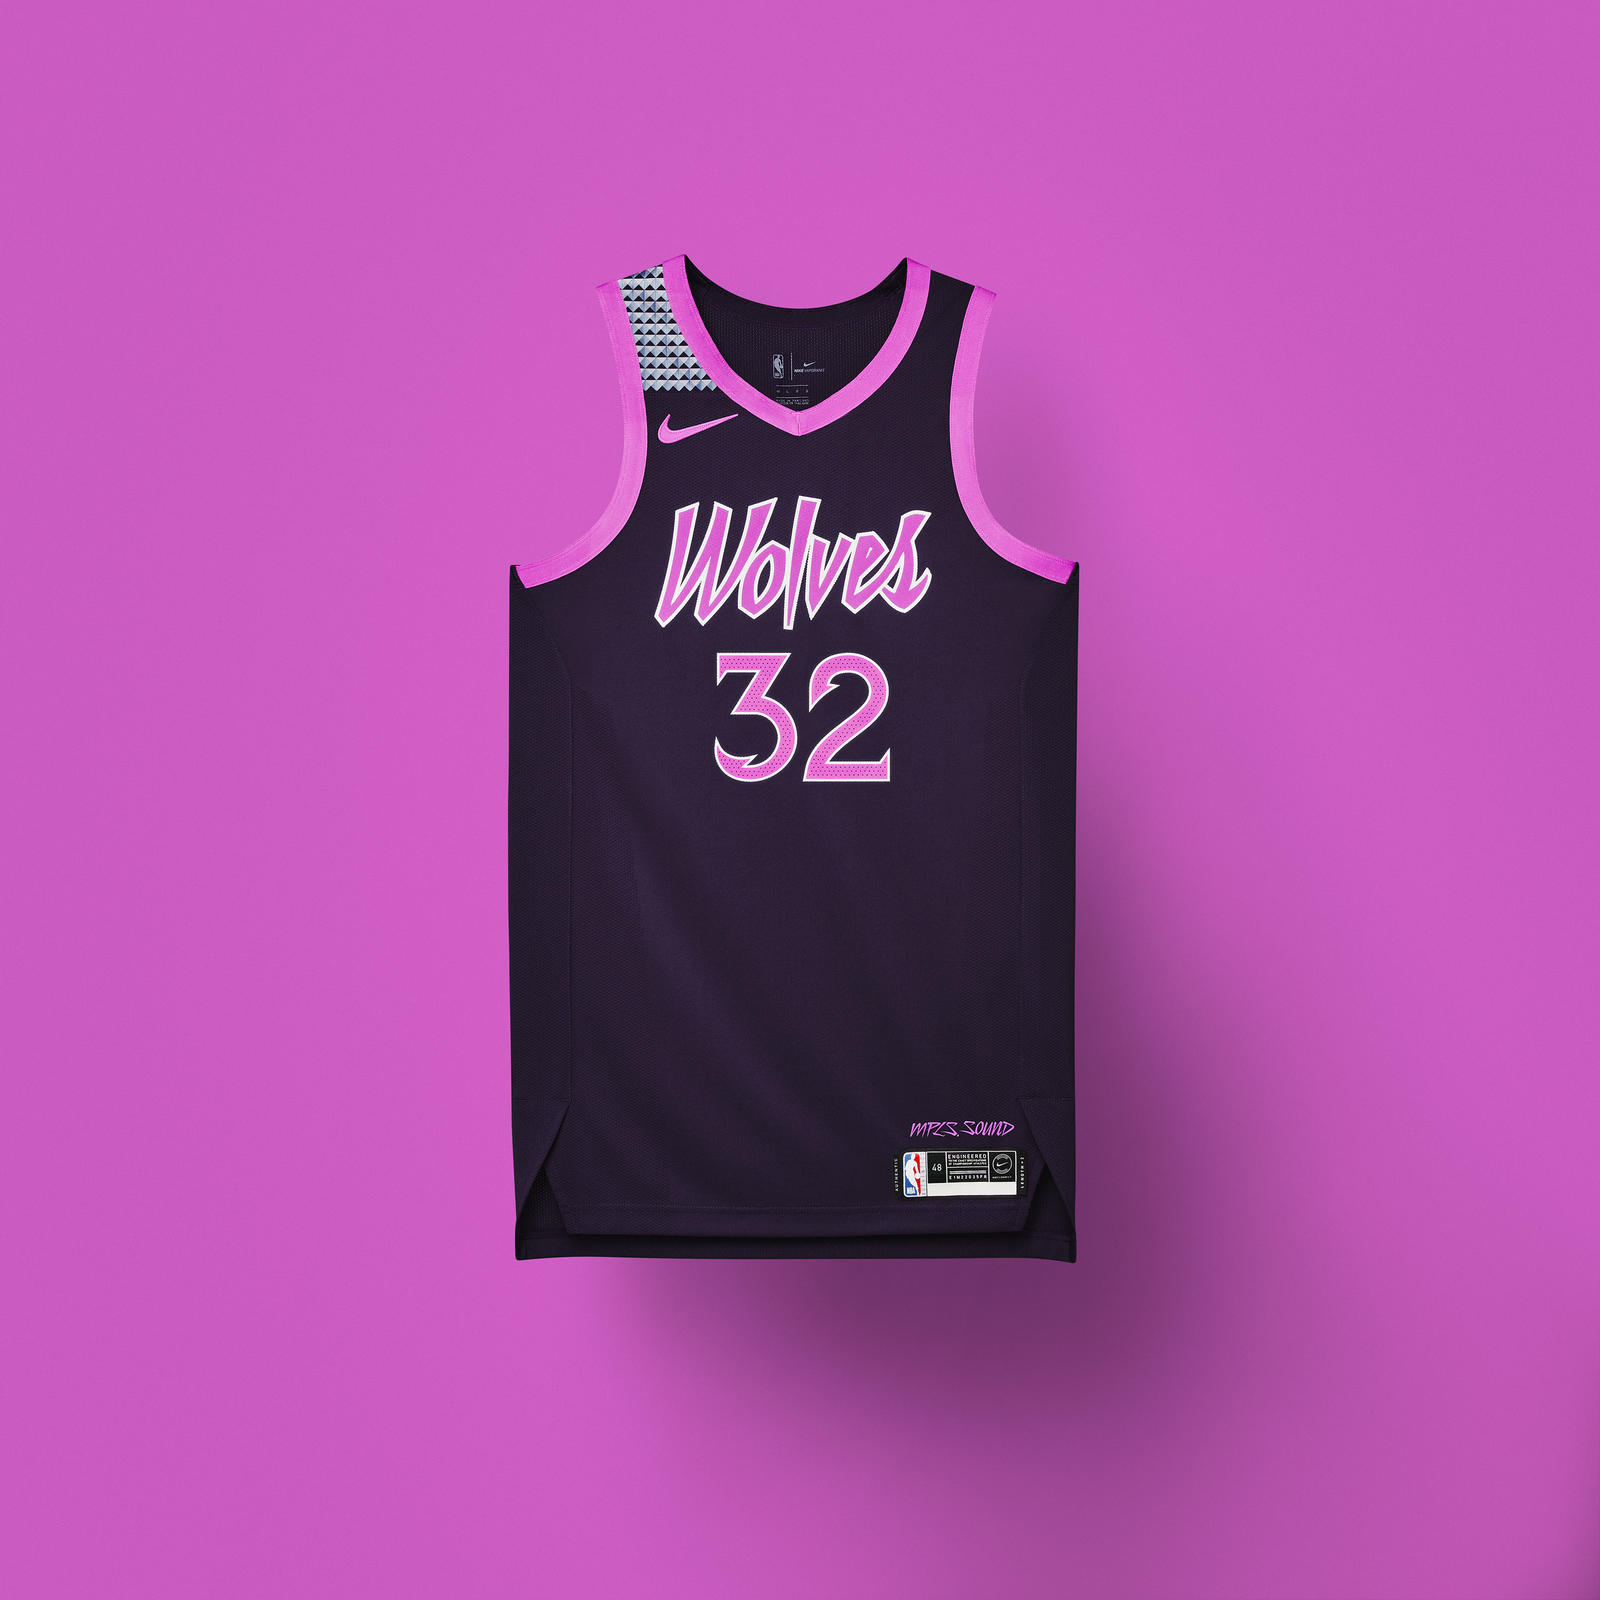 sneakers for cheap d1d8c 9794f NBA City Edition Uniforms 2018-19 - Nike News